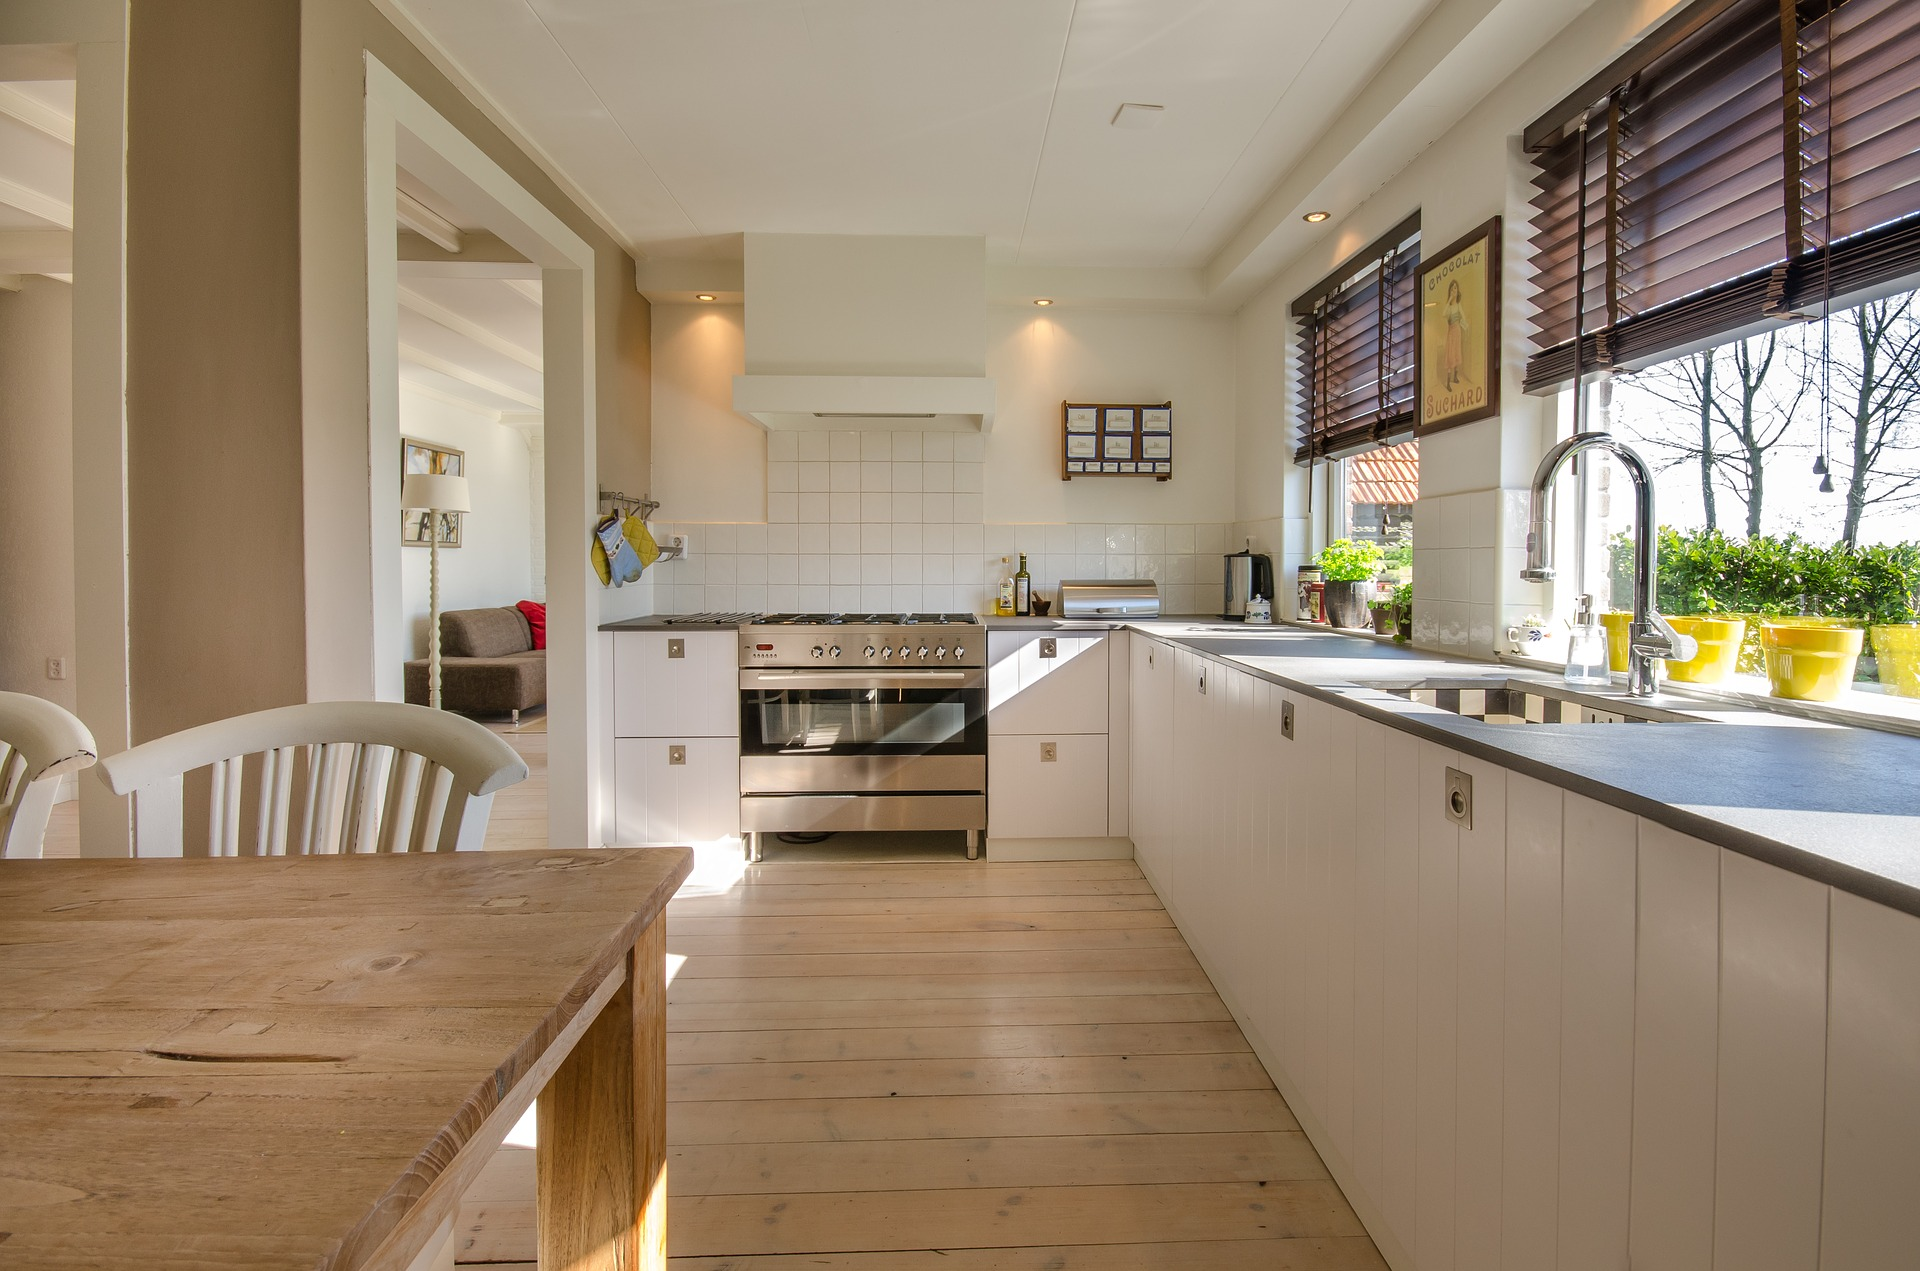 Make The Most Of Your Sullivan, Mo  Kitchen Space! 7 Time-tested Organizing Tips